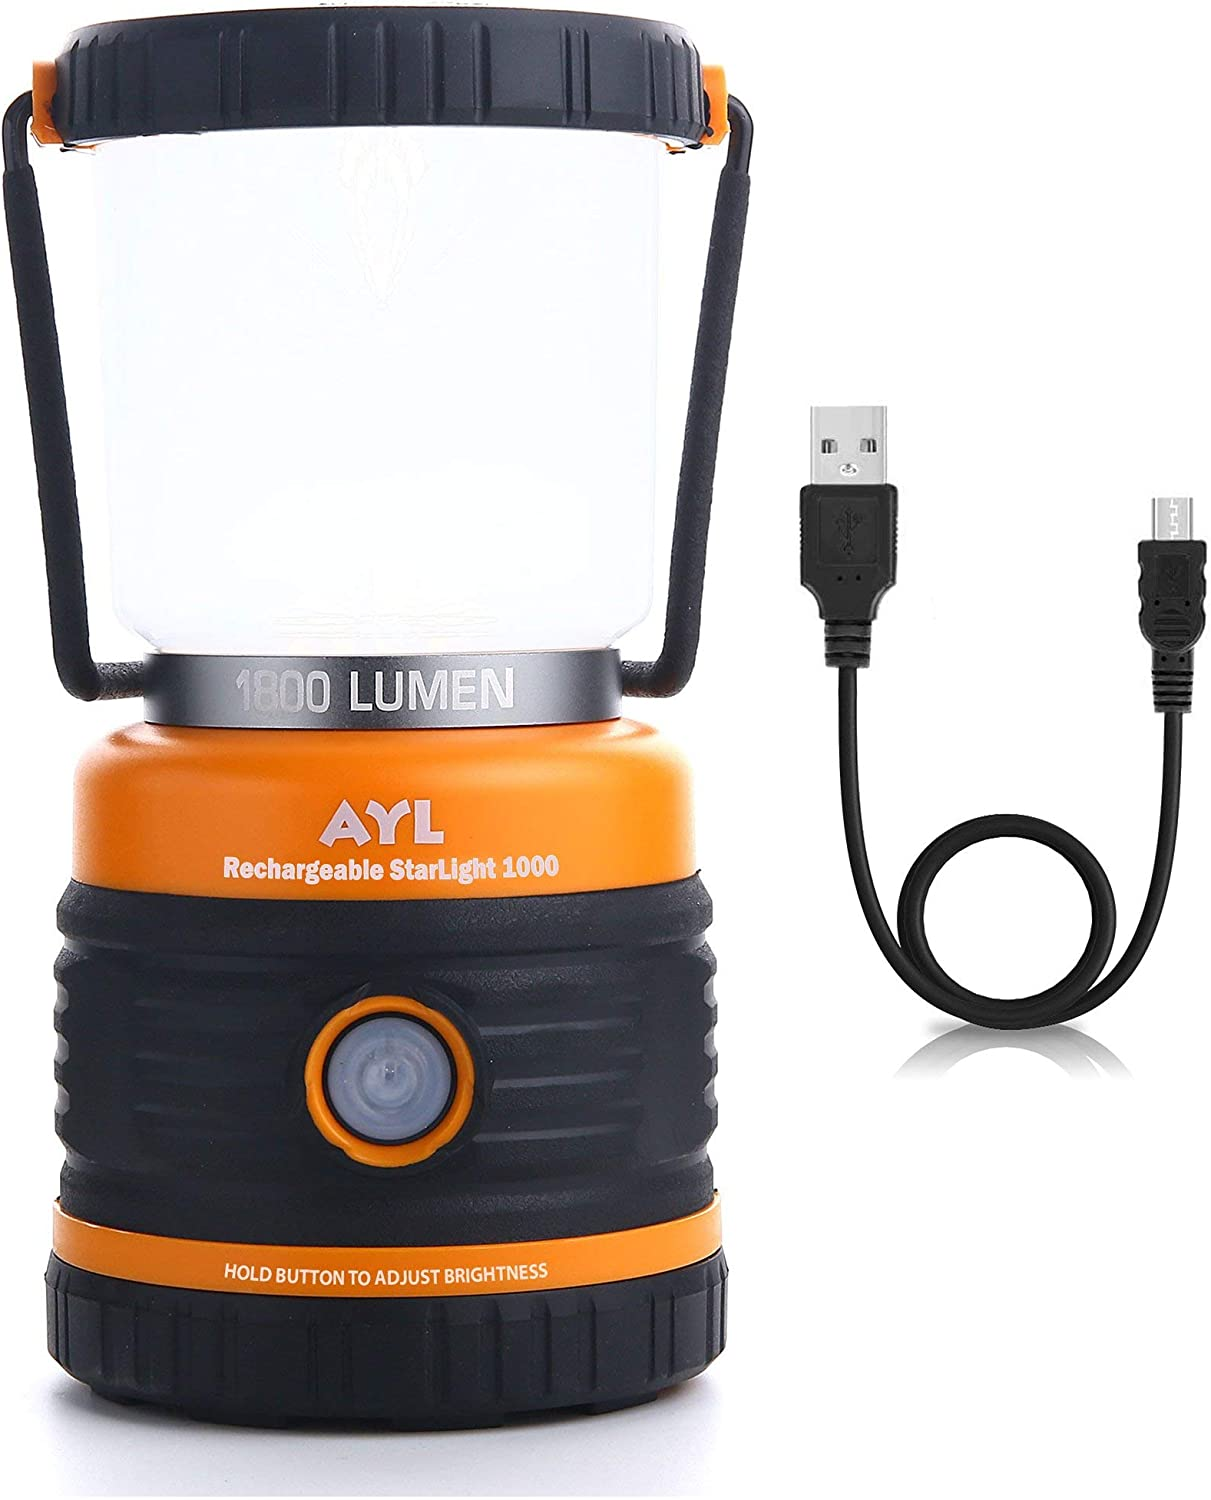 LED Camping Lantern Rechargeable, 1800LM, 4 Light Modes, 4400mAh Power Bank, IP44 Waterproof, Perfect Lantern Flashlight for Hurricane, Emergency, Power Outages, Home and More, USB Cable Included